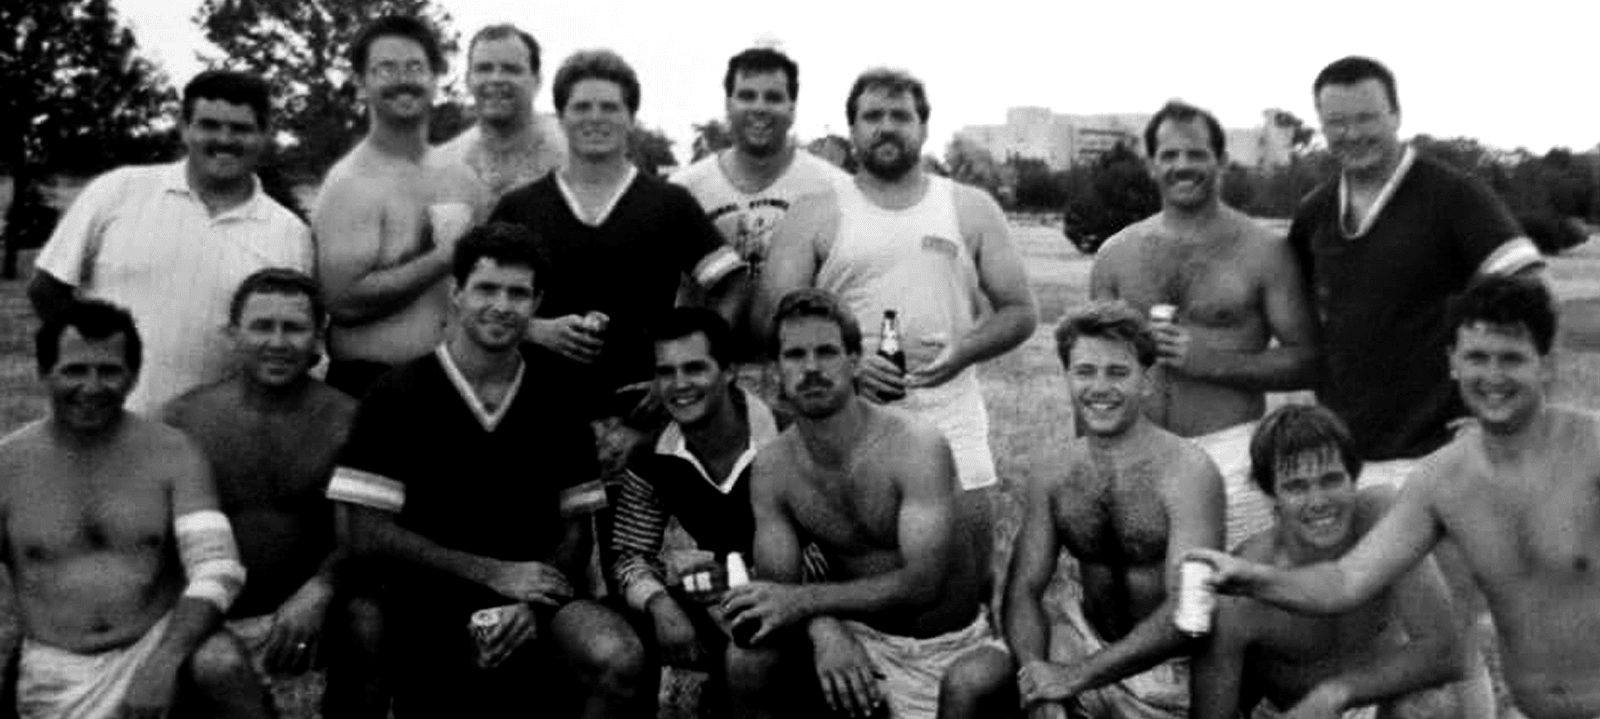 lakefront 7s history